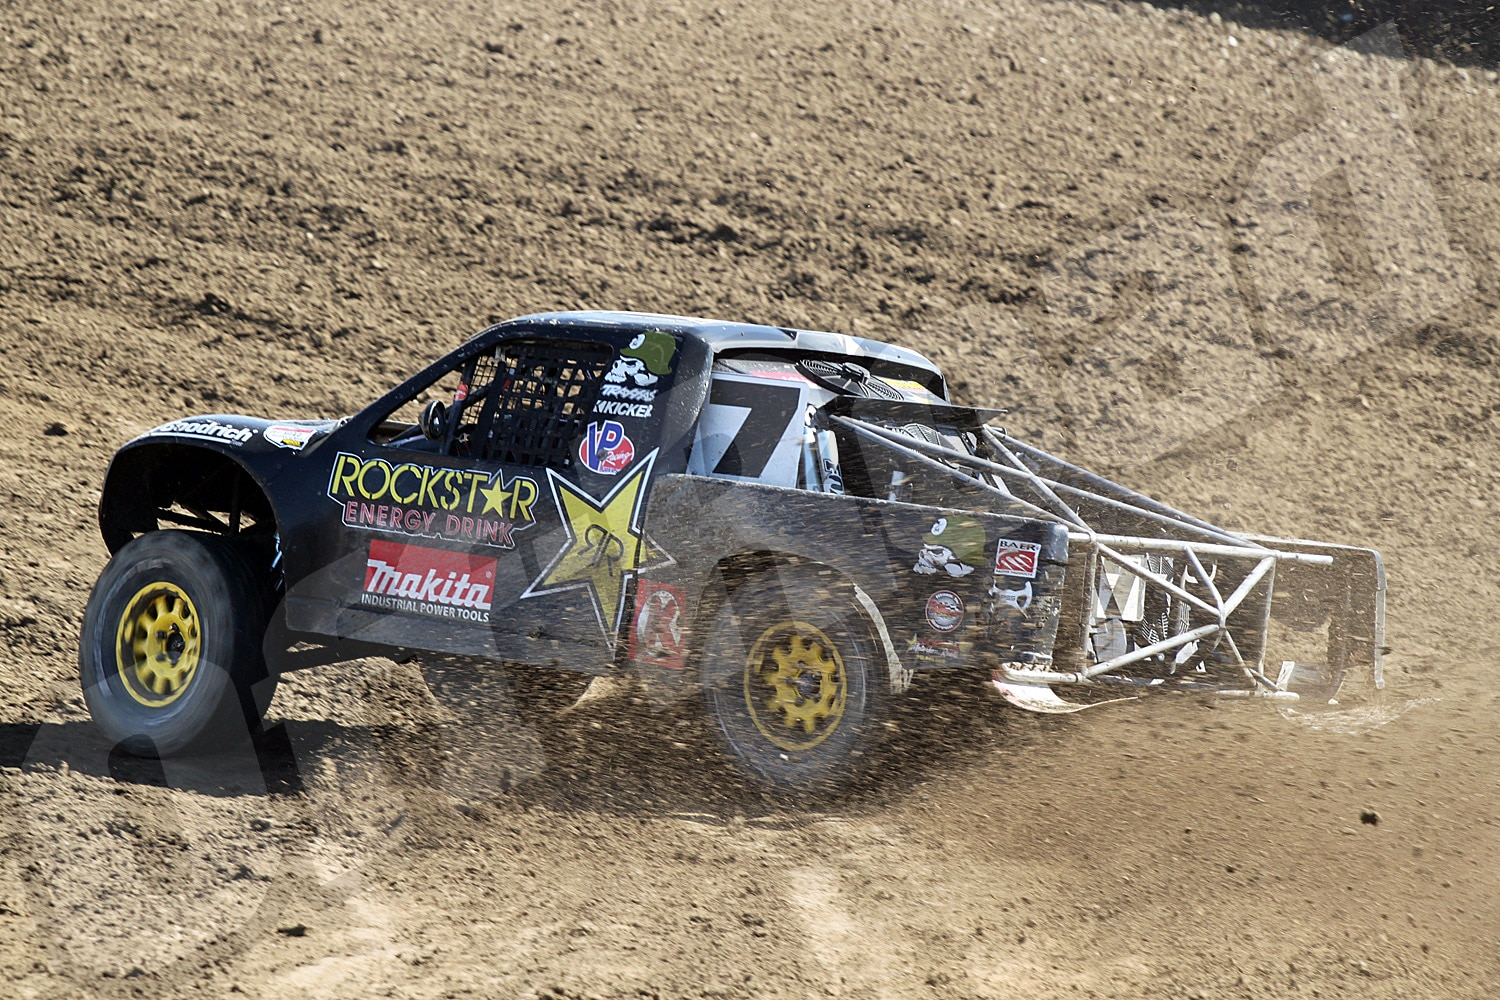 050312or 7584+2012 lucas oil off road racing series round 3+pro 4